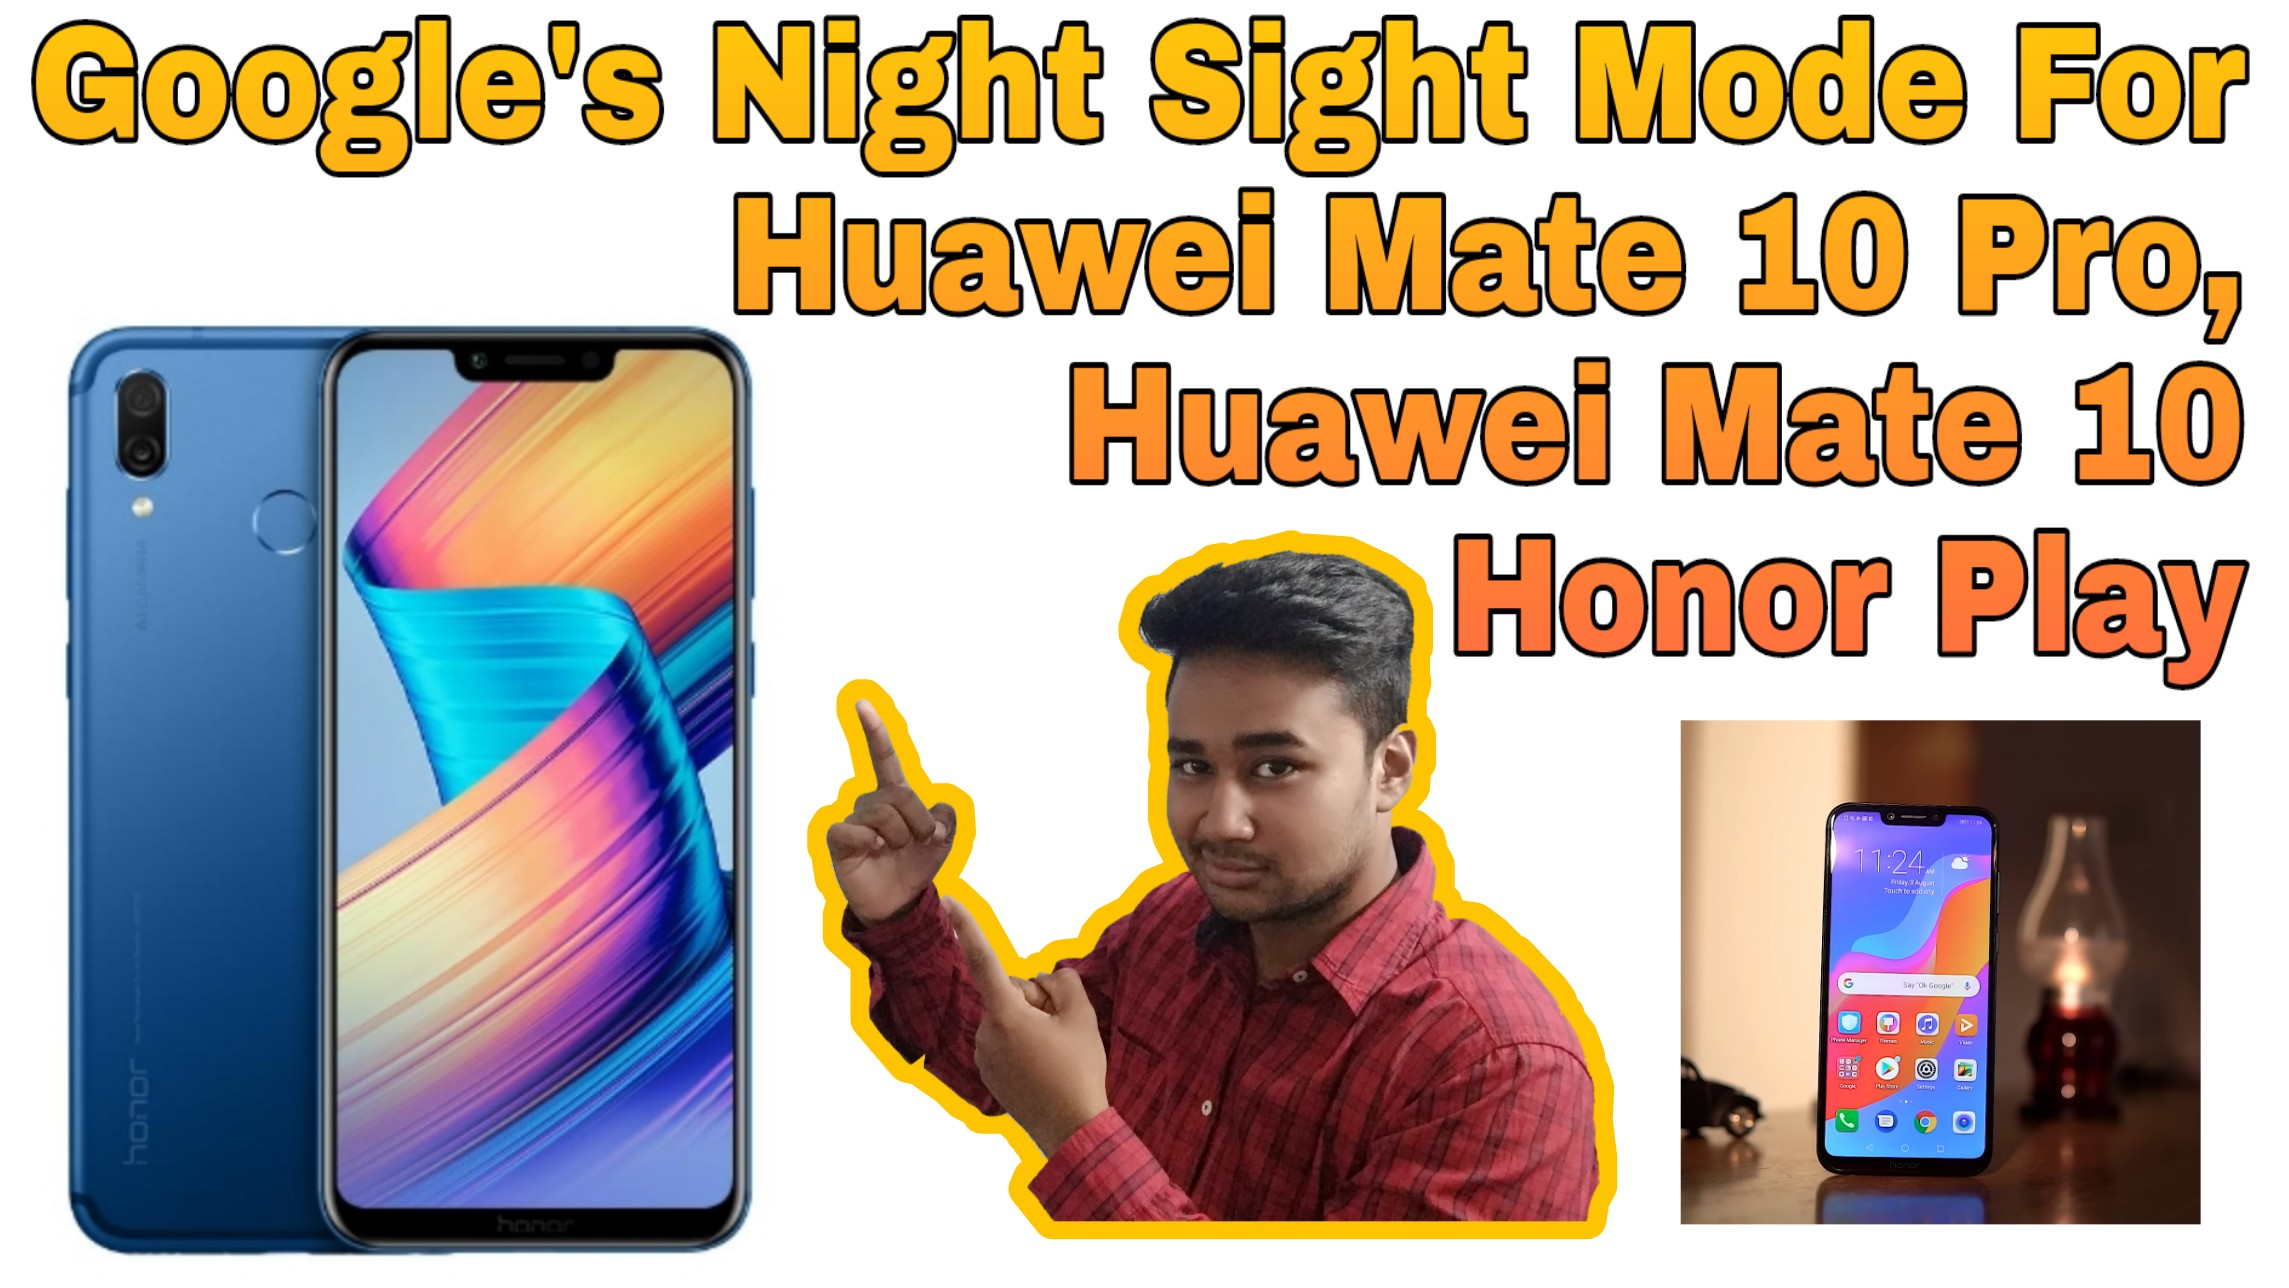 Google Camera with Night Sight for the Honor Play and Huawei